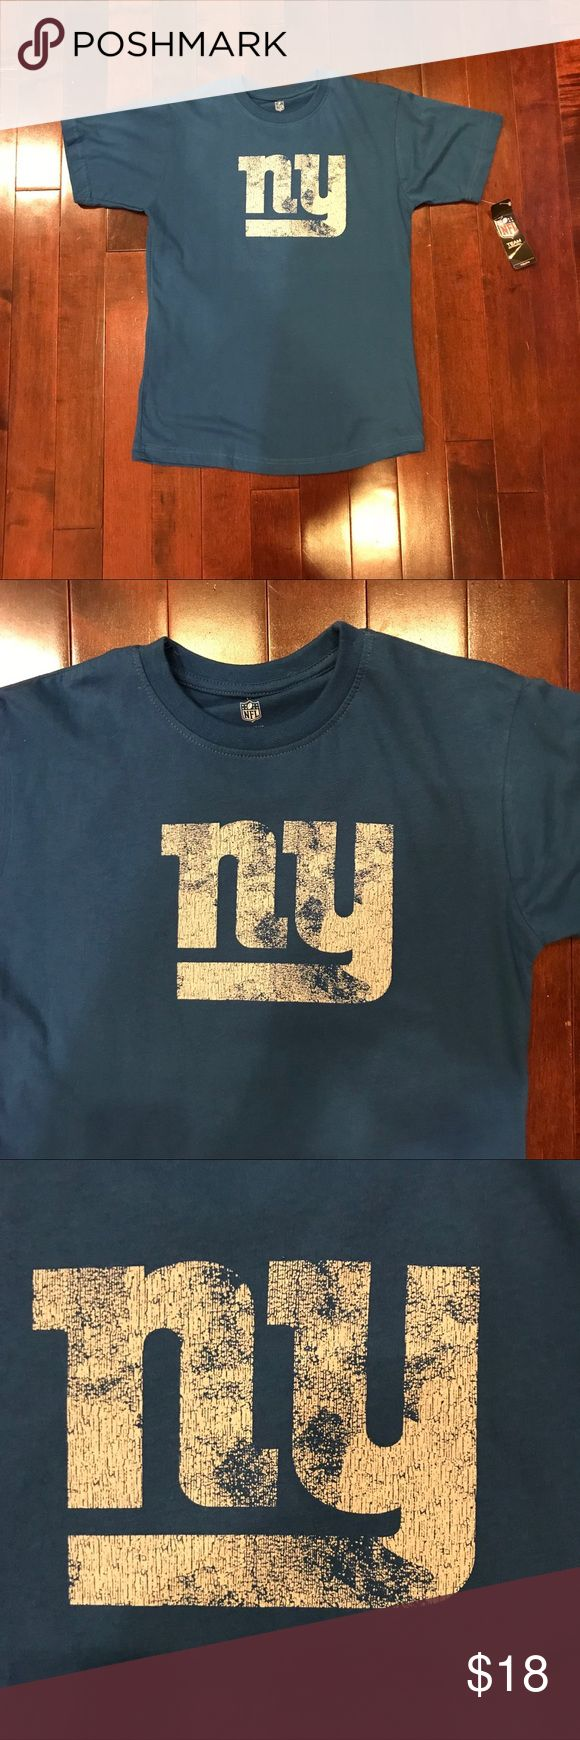 NWT Kids NFL New York Giants Eli Manning T-Shirt New with tags!  Great condition!  Eli Manning, New York Giants.  Cotton.  Medium - size 10/12.  Chest is 18 inches, length is 25.5 inches. NFL Apparel Shirts & Tops Tees - Short Sleeve